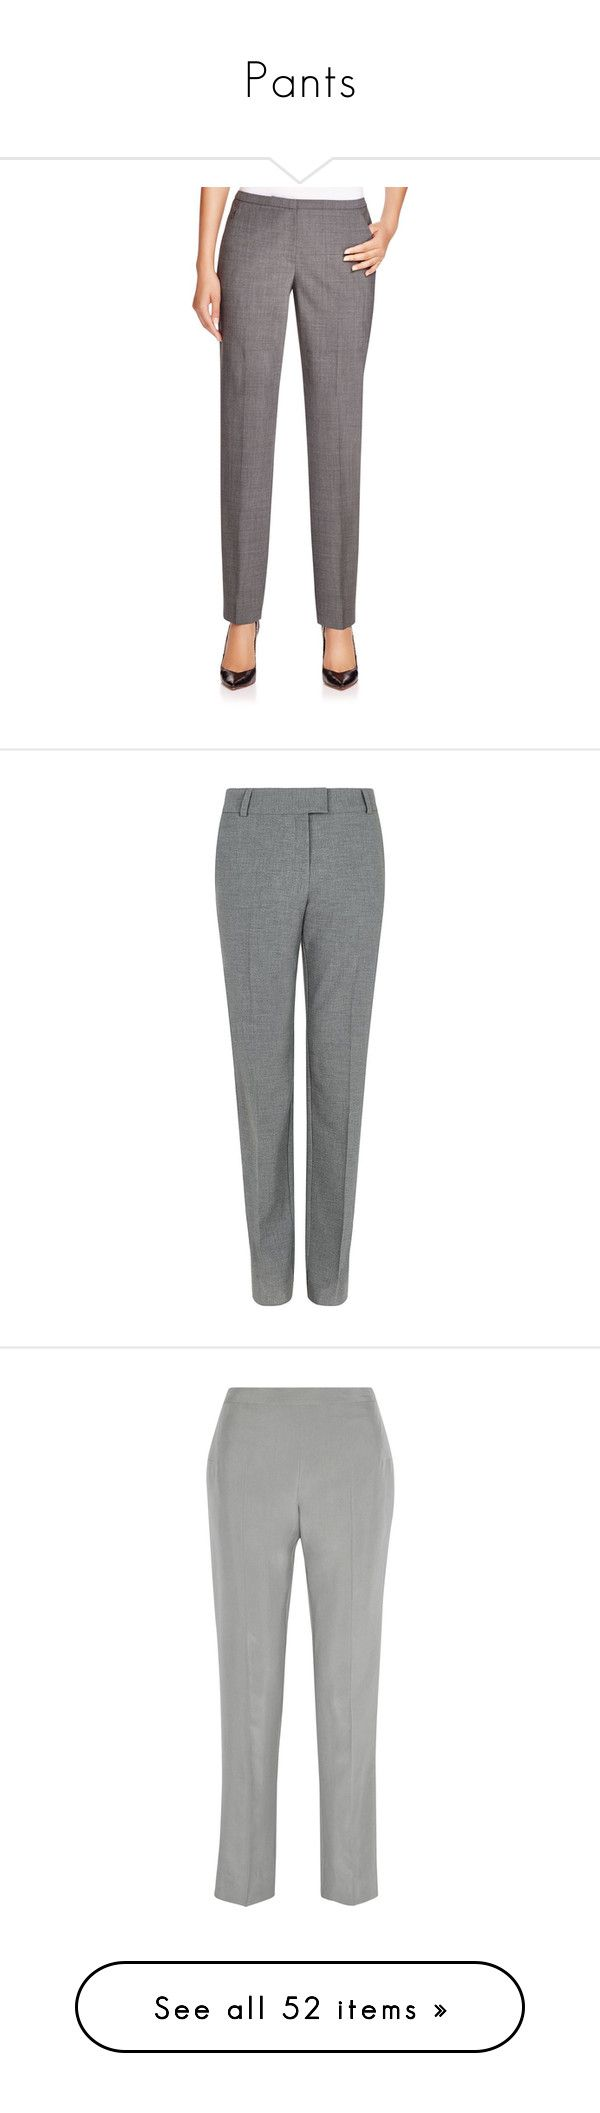 Pants by cinthya-lescano on Polyvore featuring polyvore, women's fashion, clothing, pants, grey melange, gray pants, grey pants, slim fit pants, grey trousers, slim pants, bottoms, trousers, grey, брюки, clearance, stretchy pants, long pants, stretch pants, pull on pants, straight leg pants, silk trousers, straight pants, elastic waist pants, mid grey, checkered pants, checked pants, reiss, reiss pants, checked trousers, grey fantasy, petite, petite pants, tailored pants, zip pants…